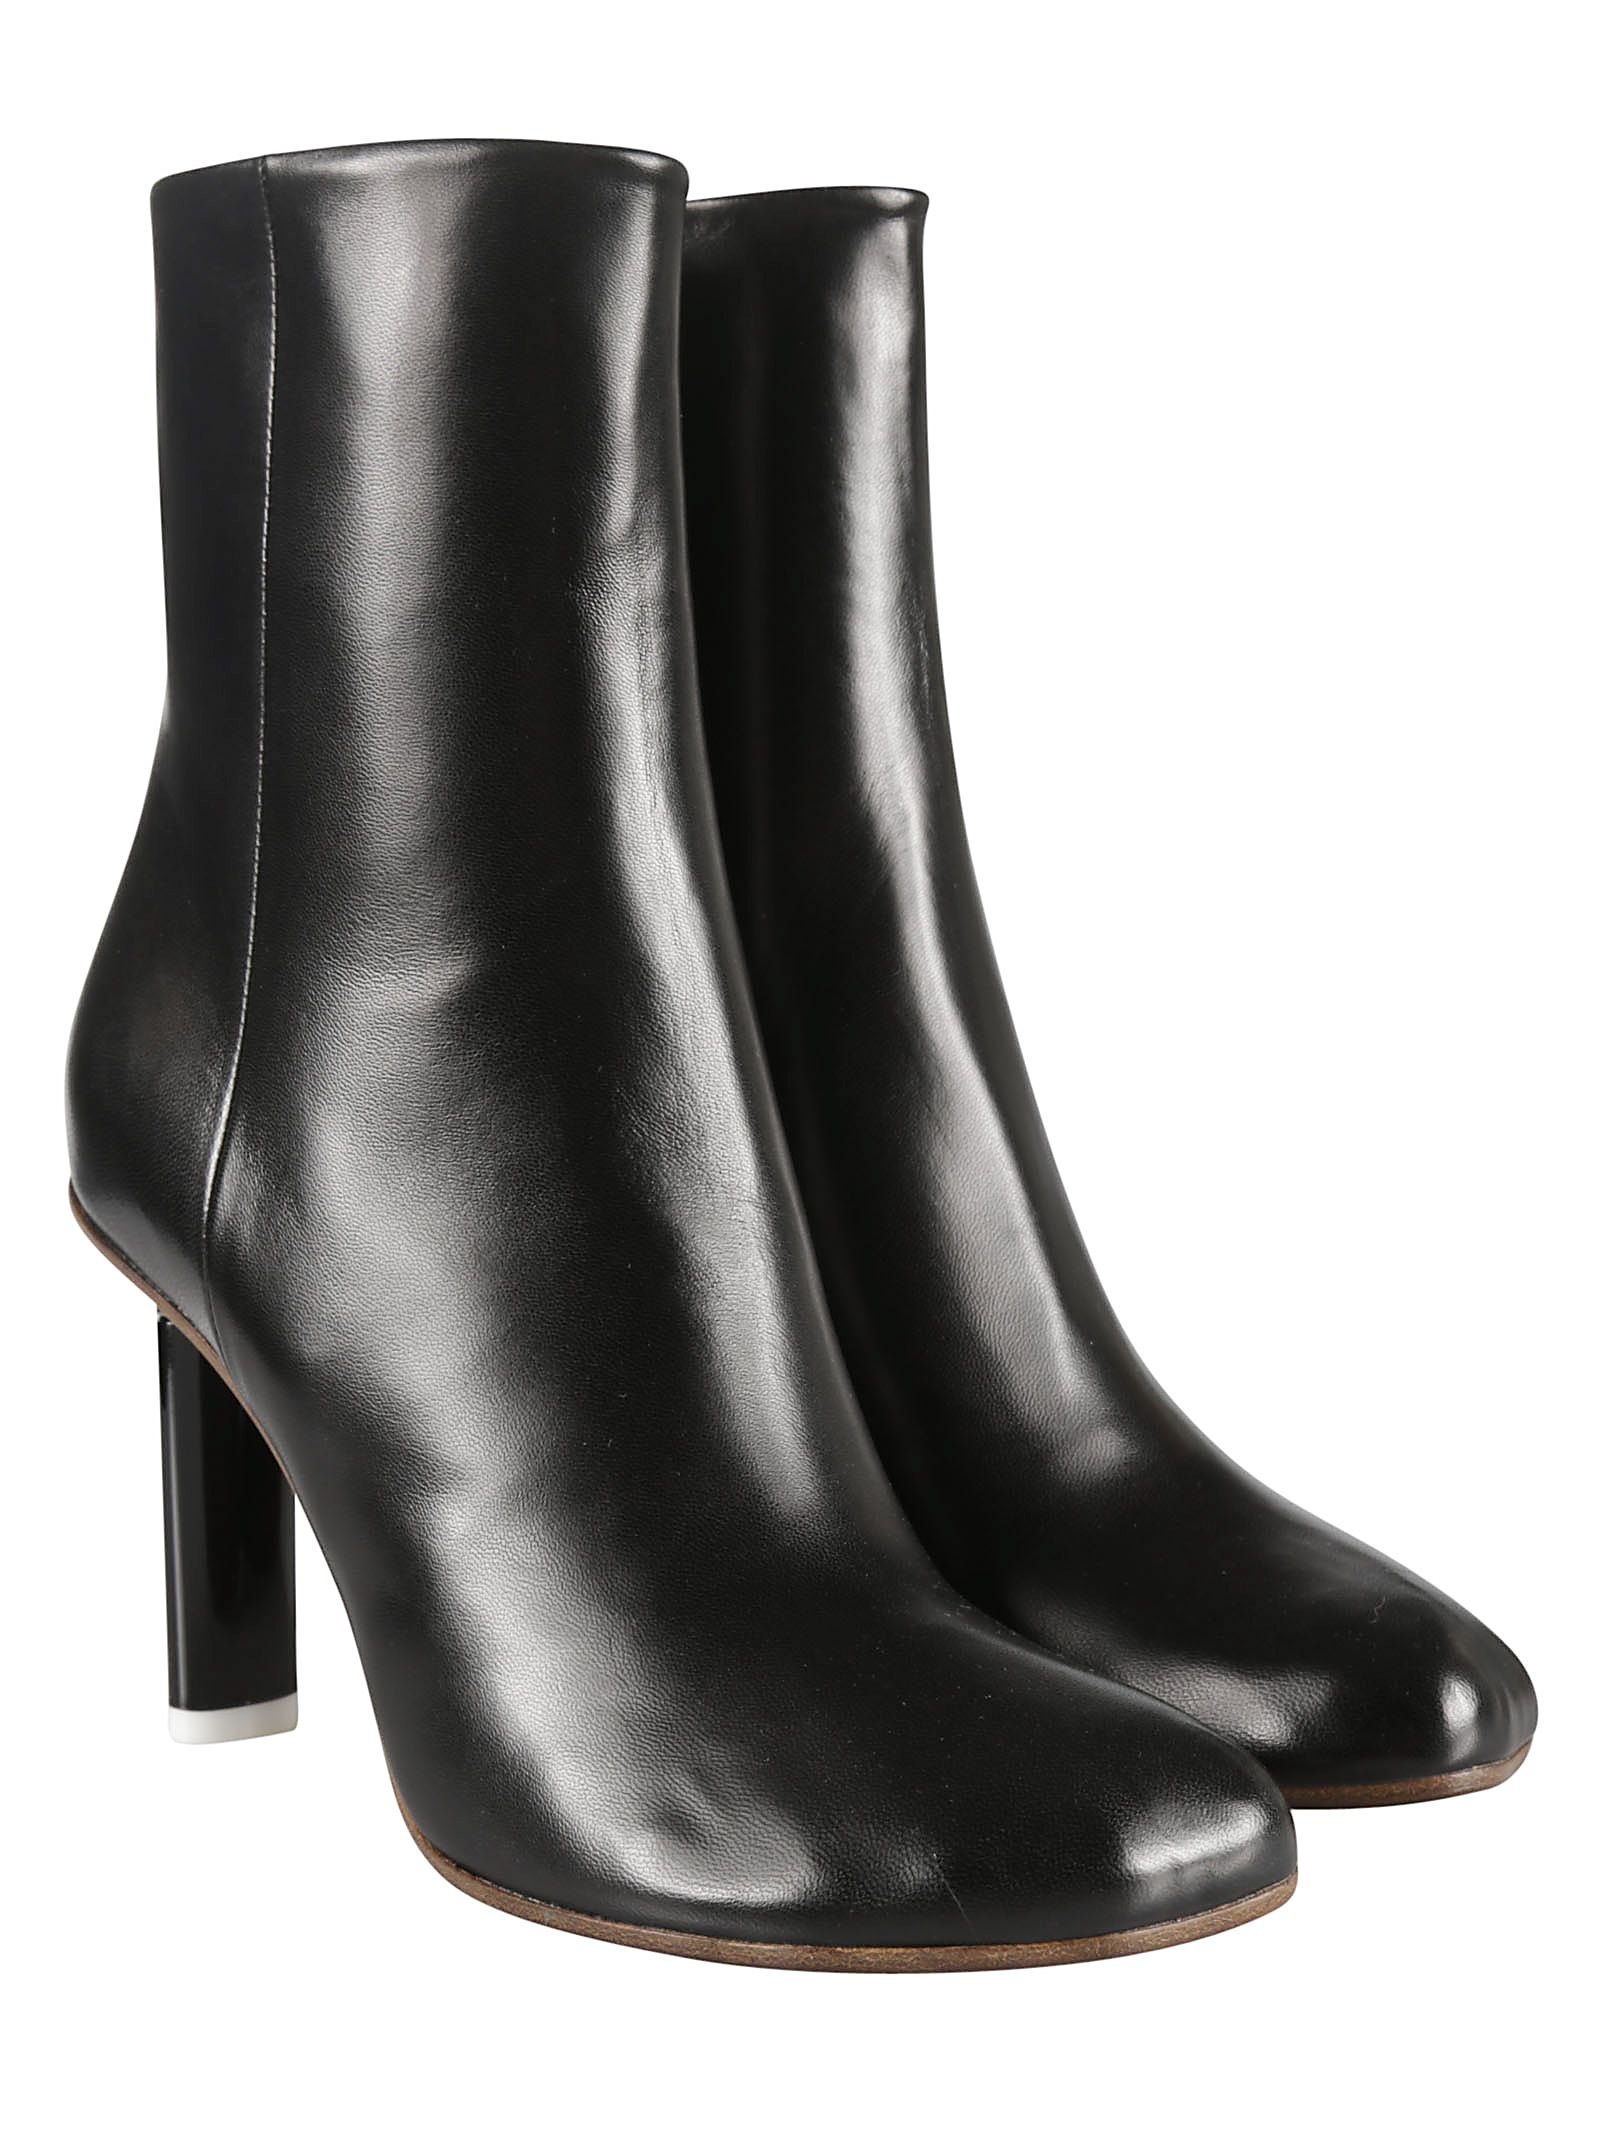 Leather Ankle Boots from VETEMENTS: Black Leather Ankle Boots with round toe, high heel and side zip fastening.